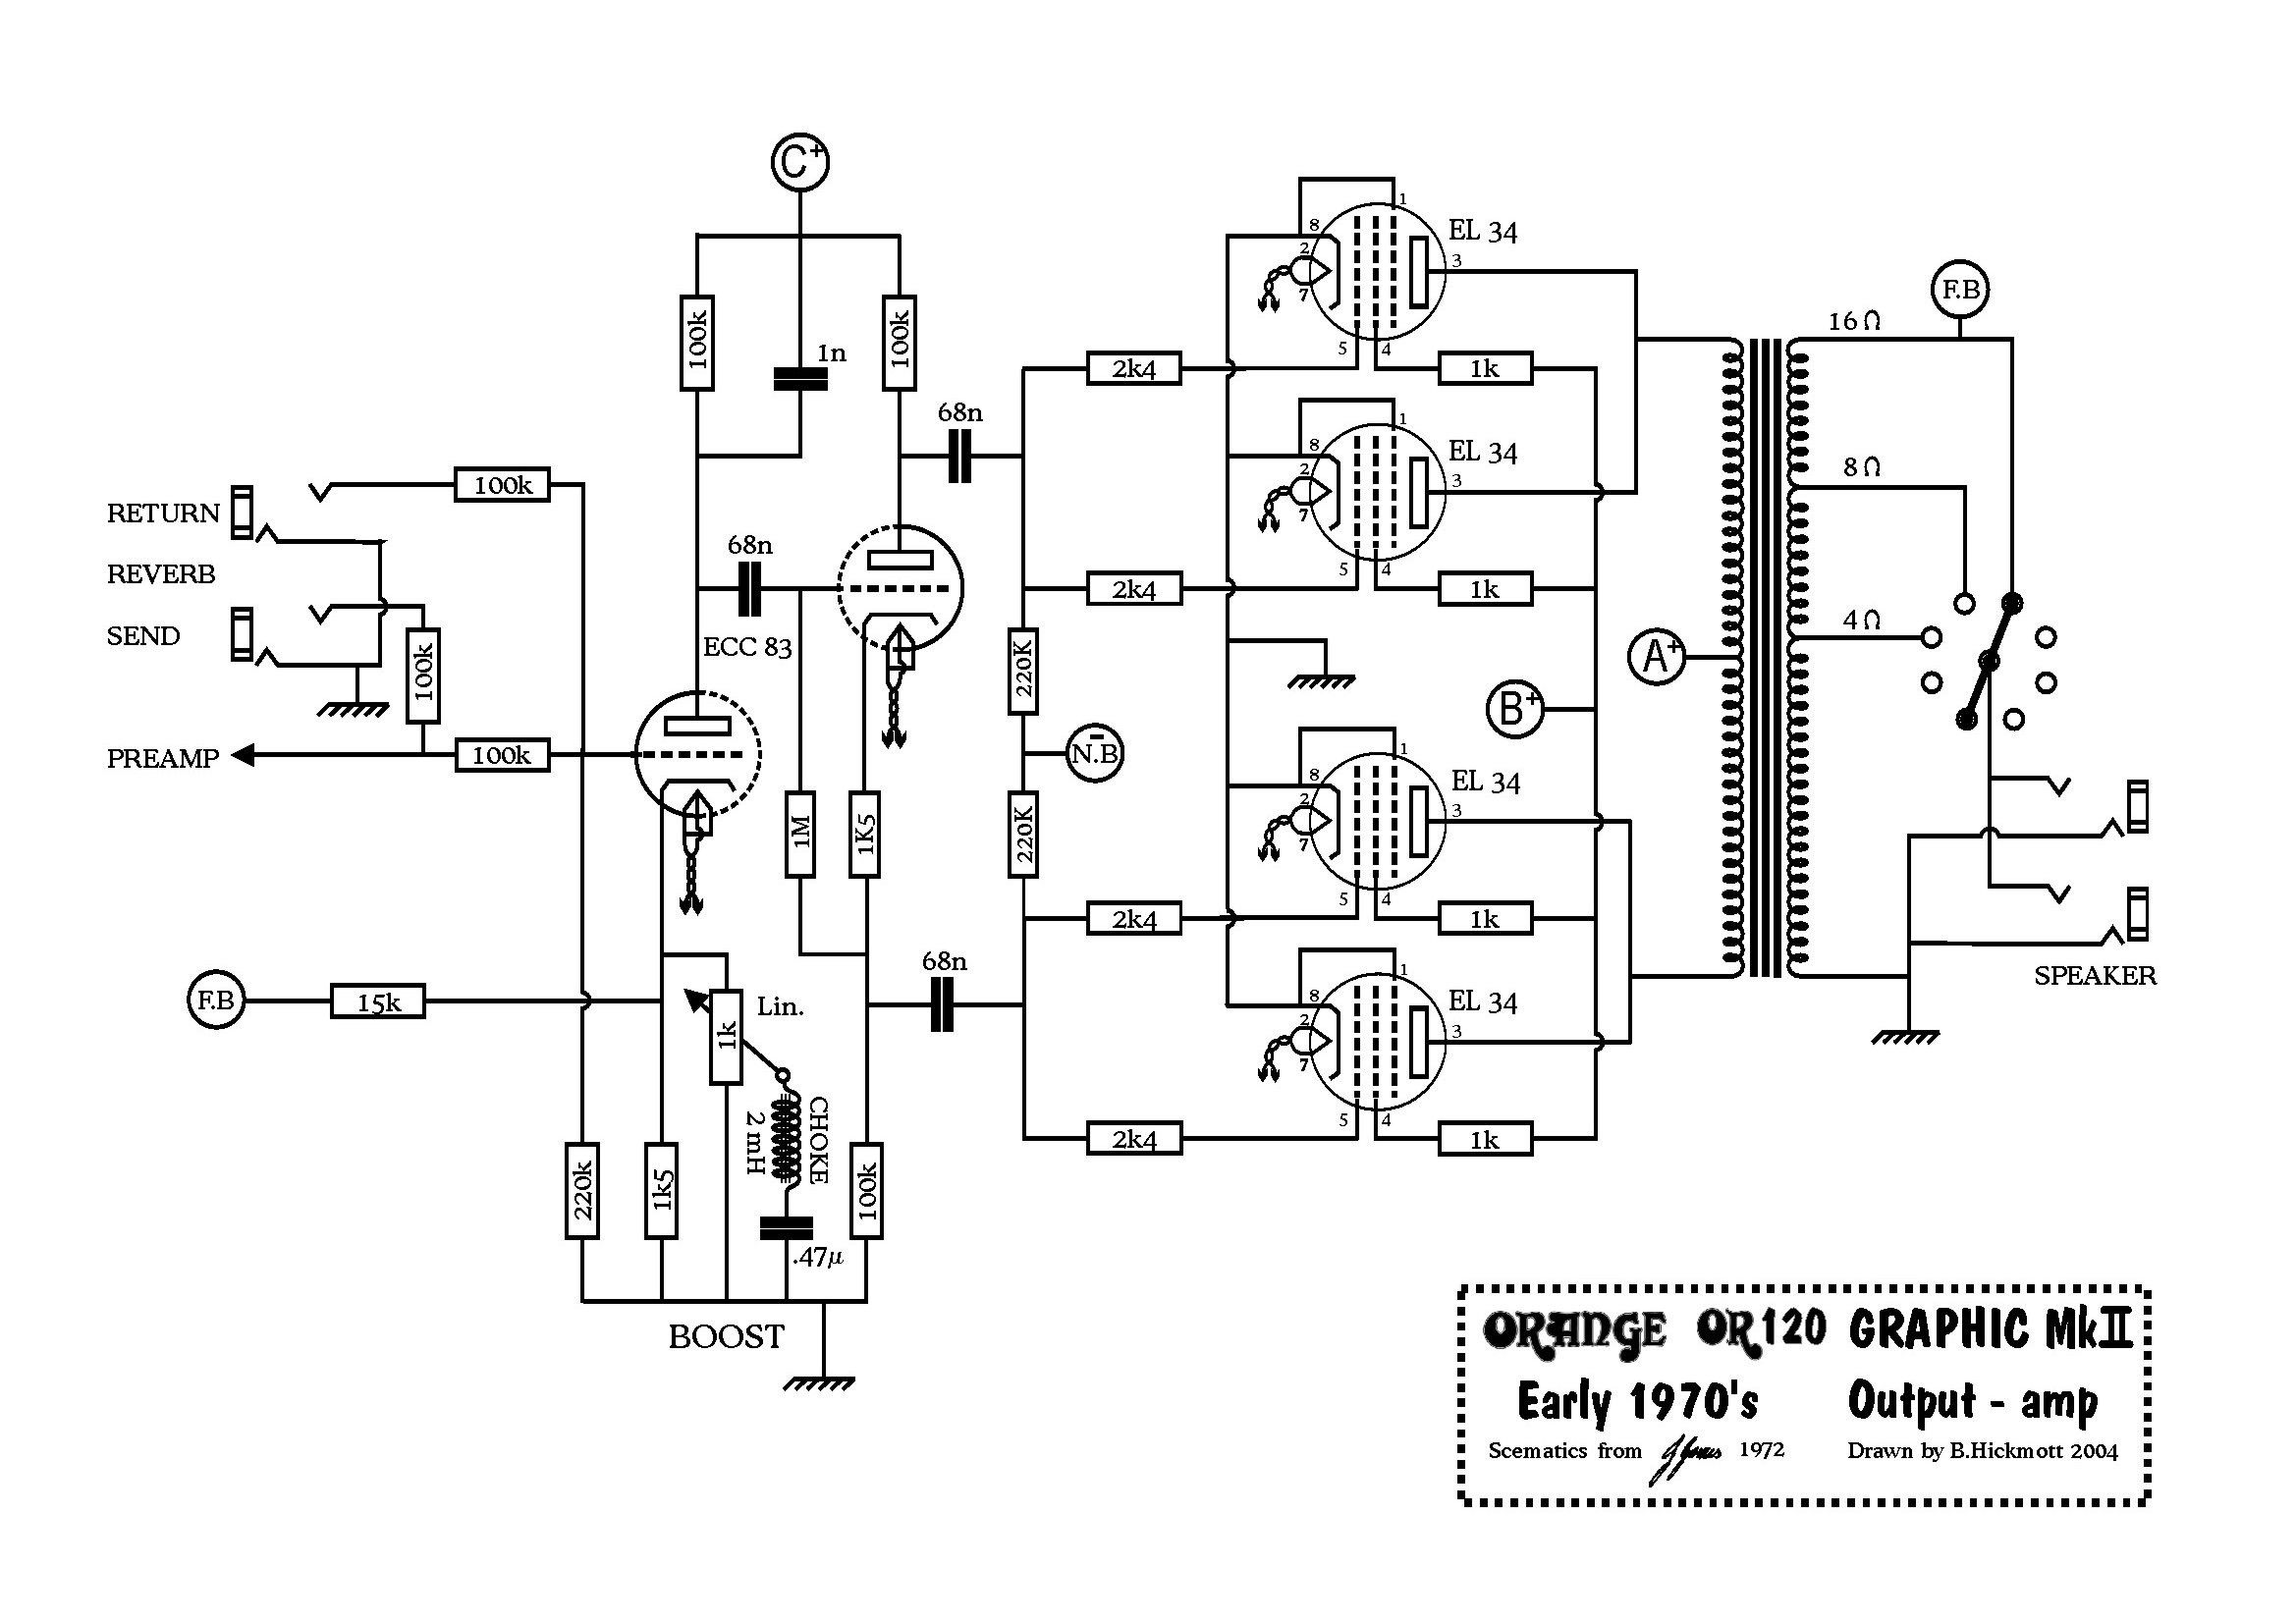 medium resolution of guitar amplifier circuit diagram with pcb layout new the orange amp mods page